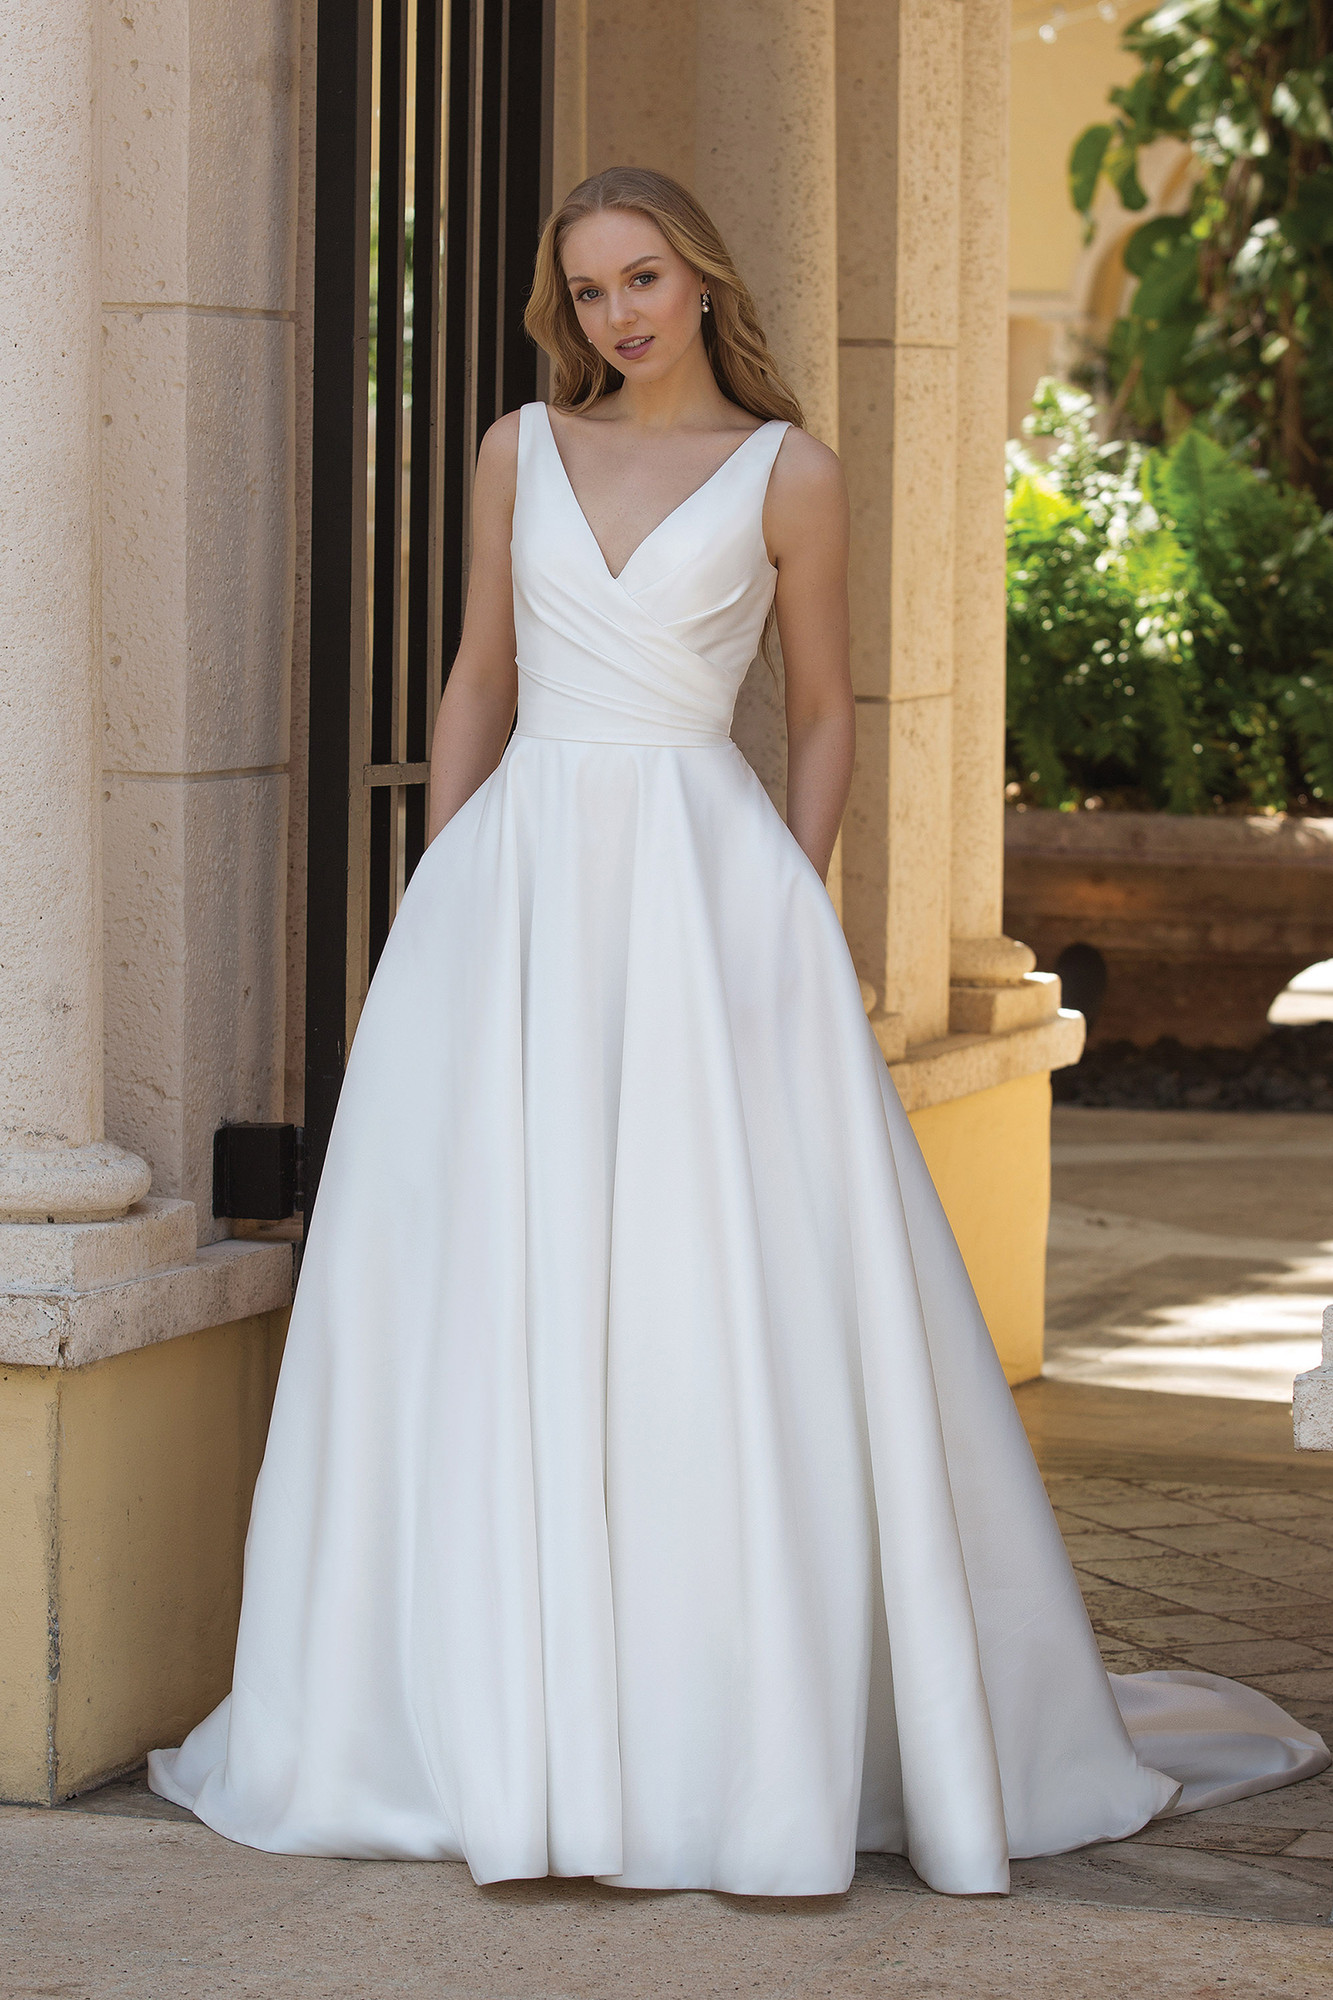 Wedding Dresses By Sincerity Bridal 44080 Weddingwire Ca